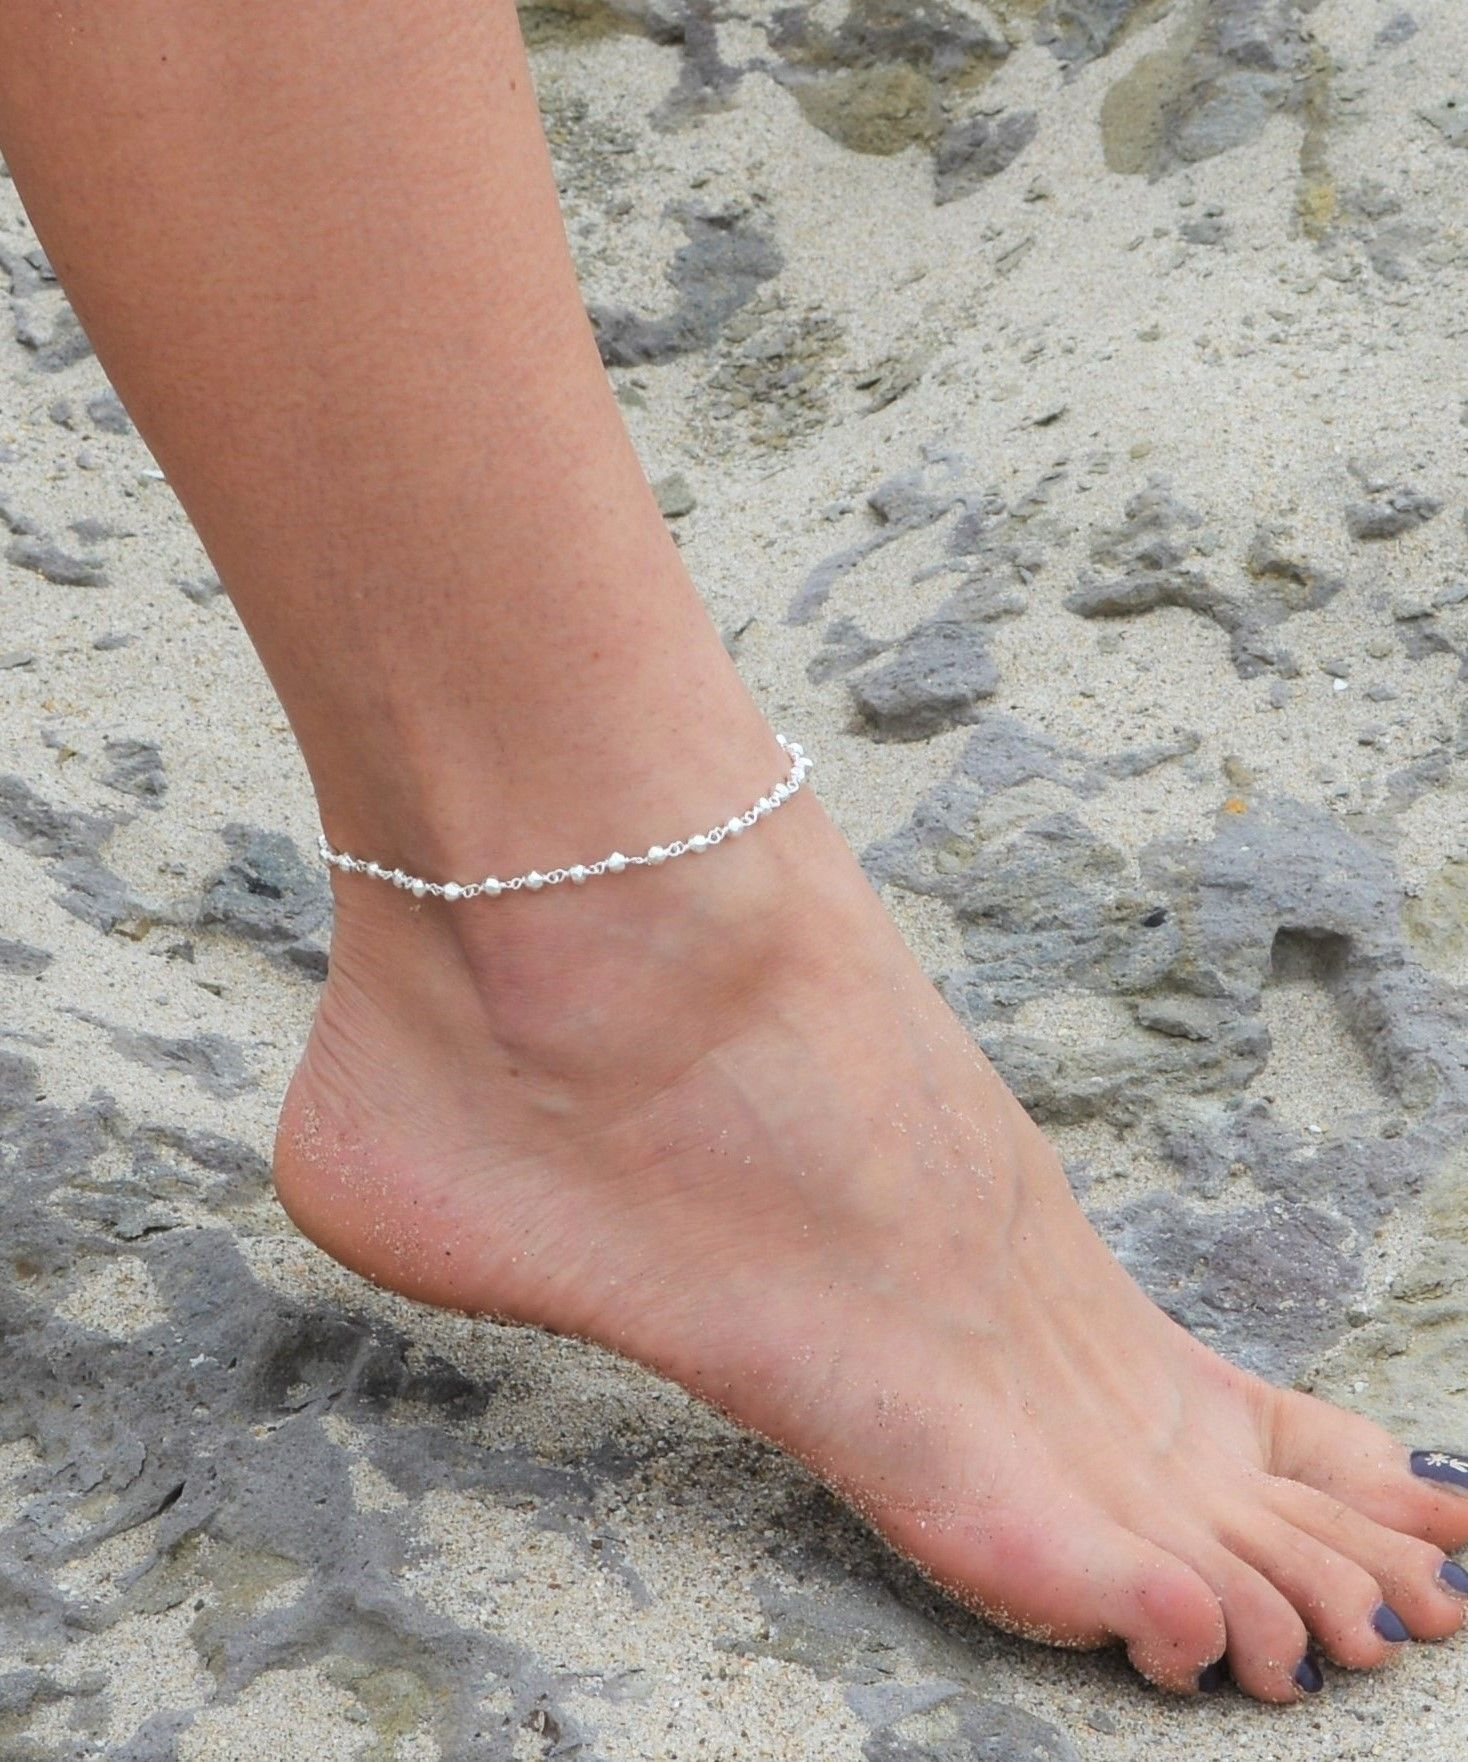 bracelets olizz ankle evil anklet sterling good silver eye something luck blue megaera bracelet